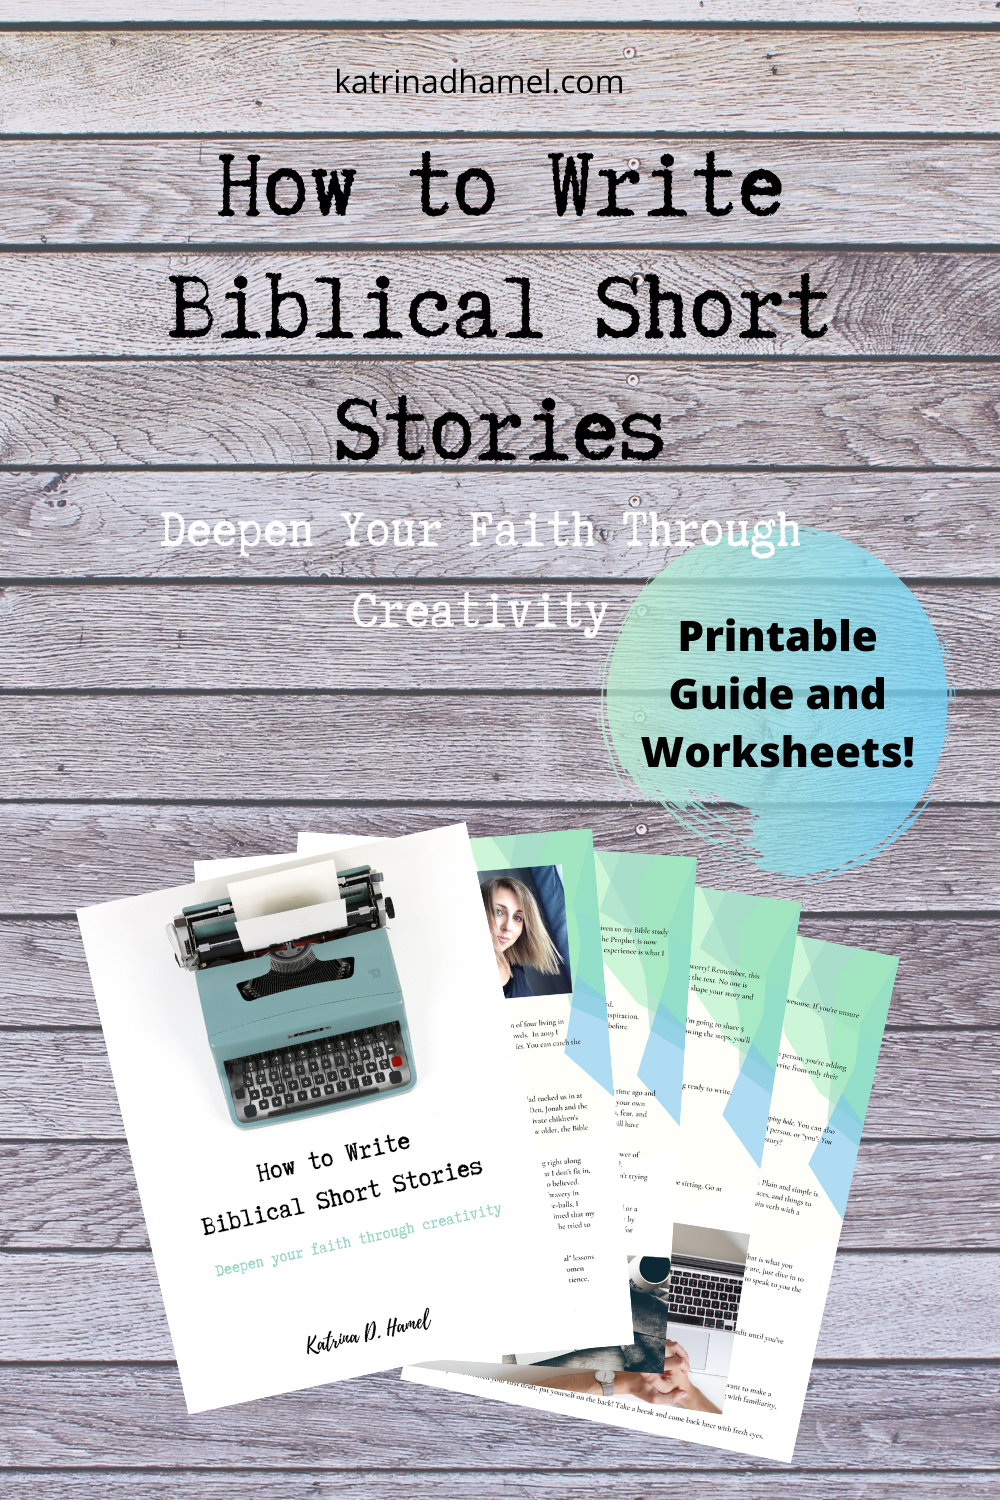 sheets of brightly colored paper that read 'How to Write Biblical Short Stories' Printable guide and worksheets